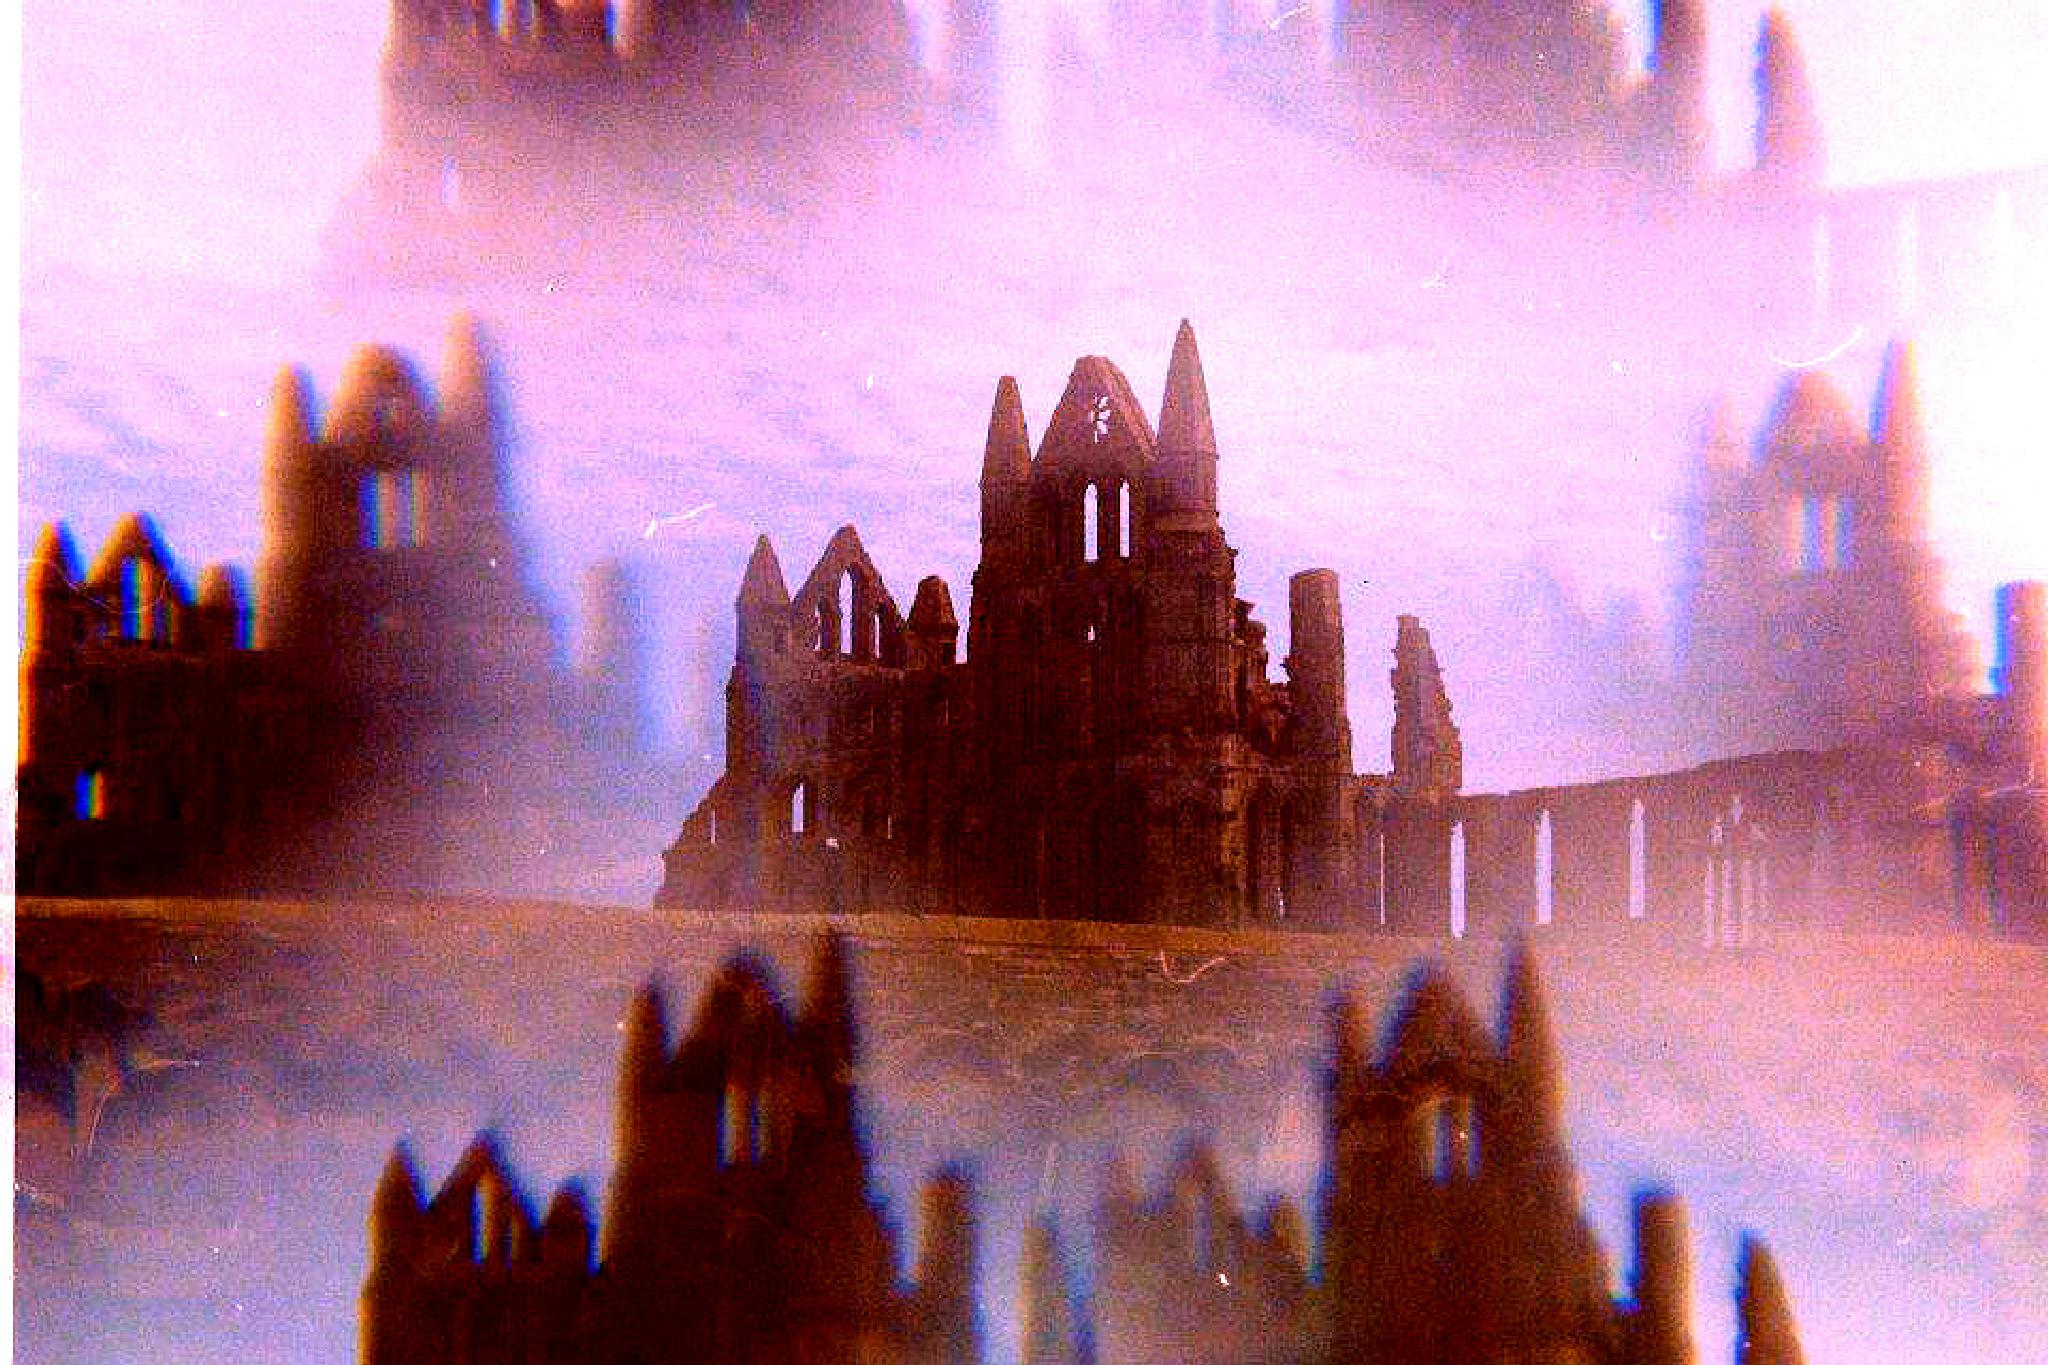 Whitby Abbey by adrian pendlebury